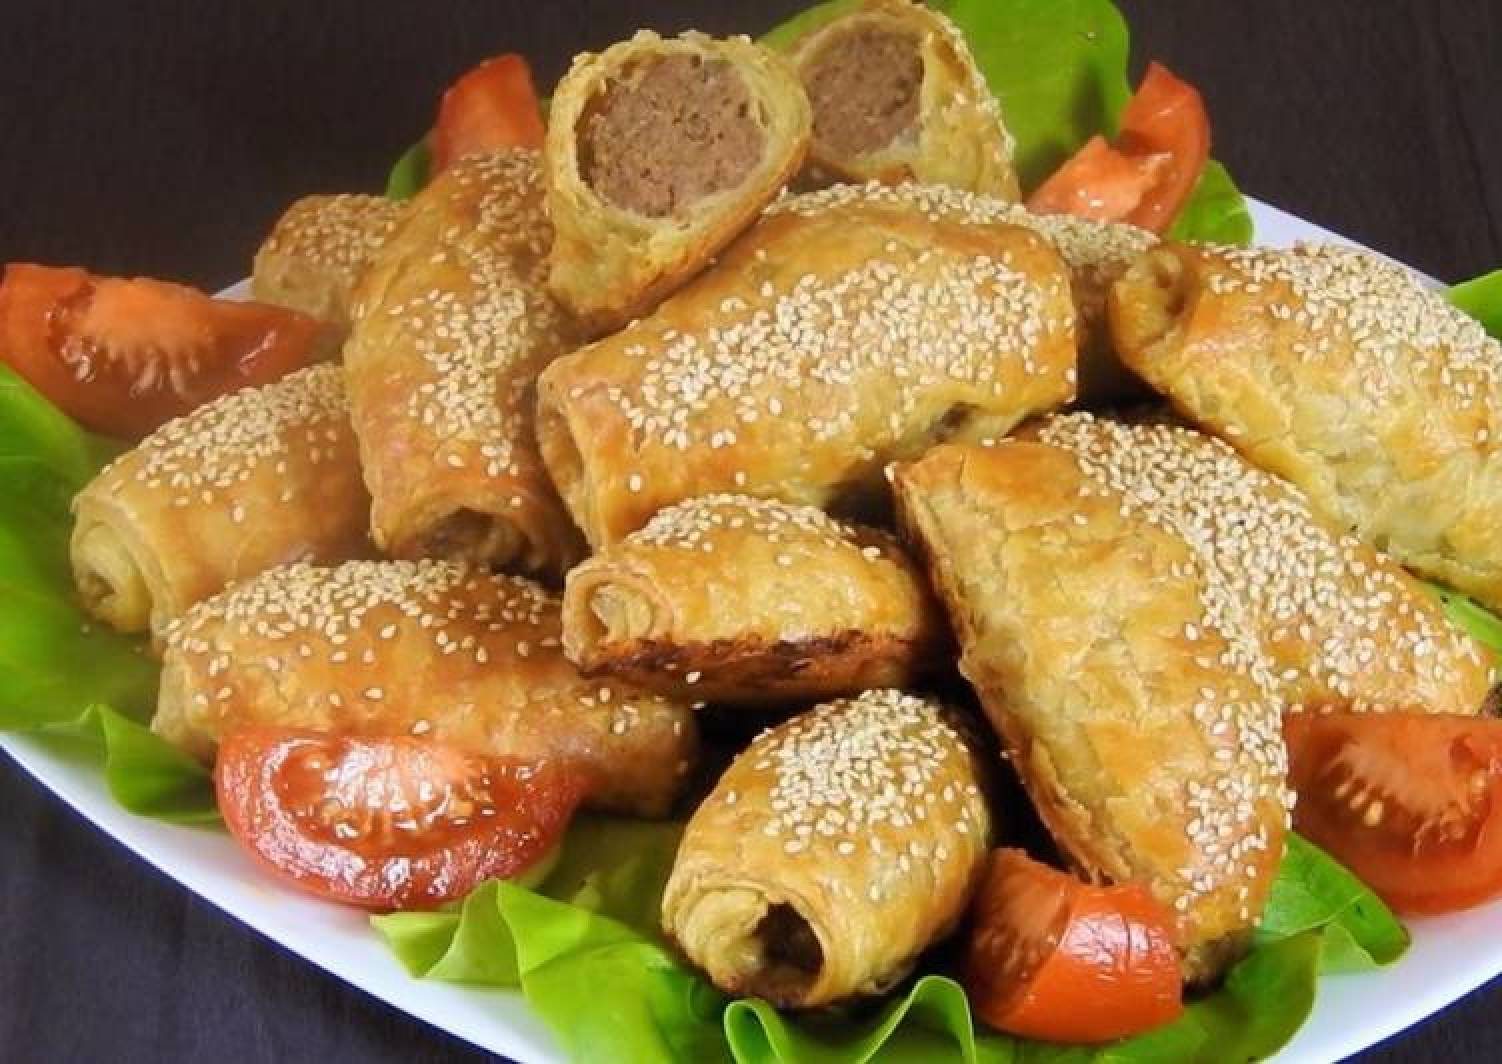 Mini Cheesy Meatball Pies Wrapped in Puff Pastry